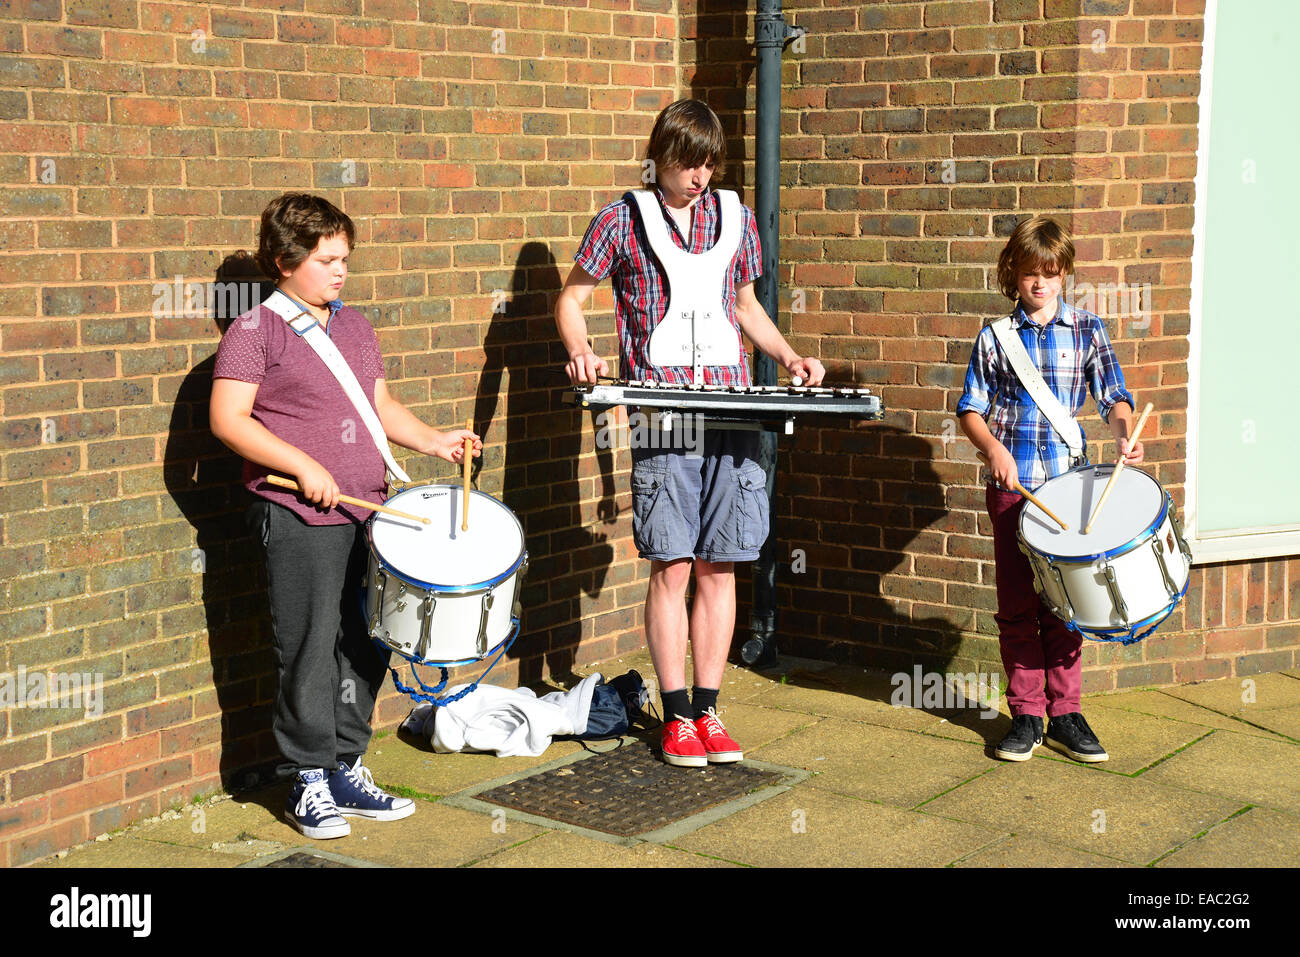 Young boy buskers, St Thomas' Square, Newport, Isle of Wight, England, United Kingdom - Stock Image